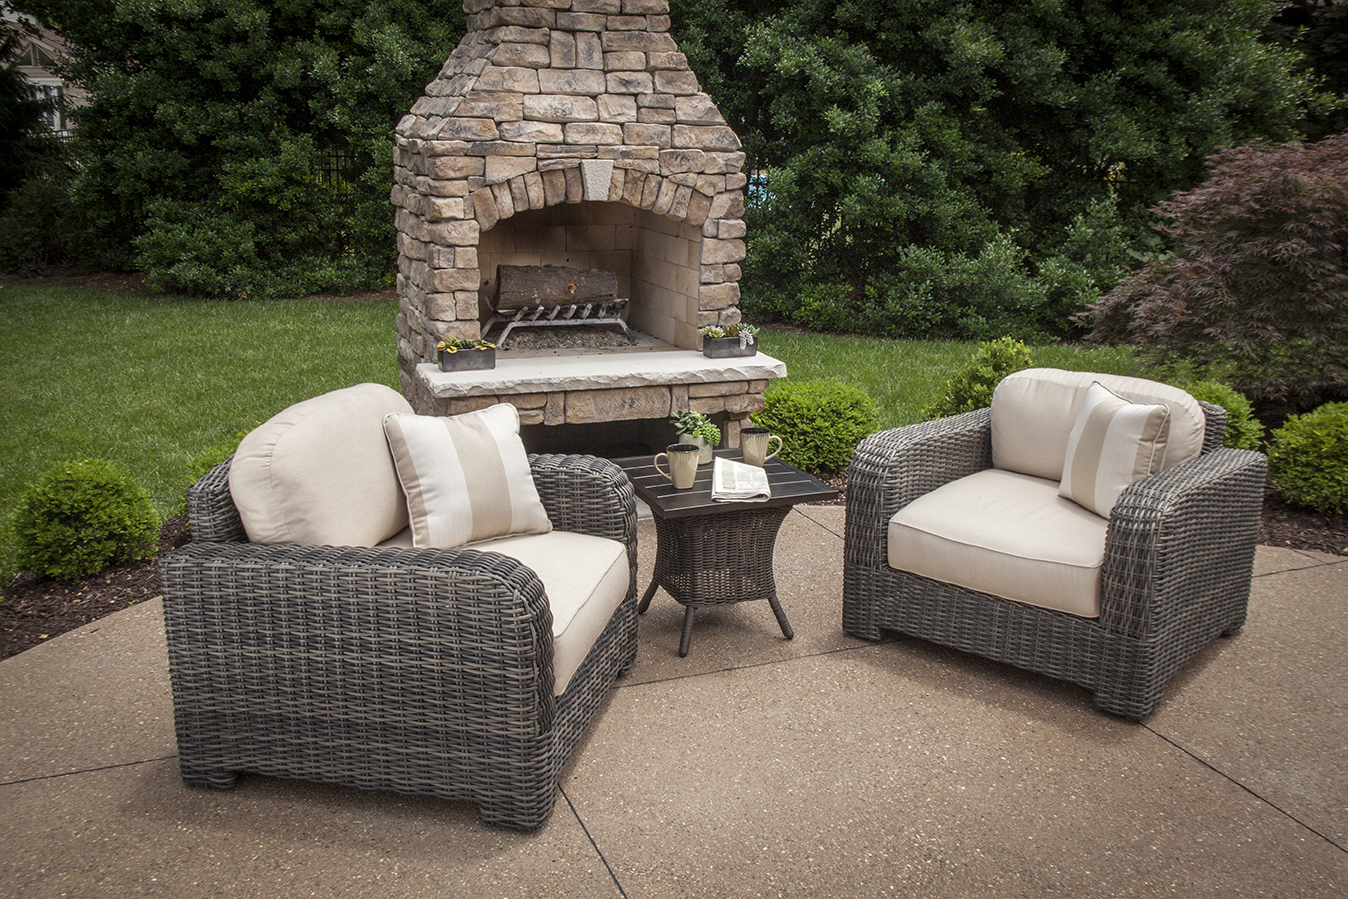 Beau From Basic To Beautiful   Outdoor Patio Makeover Reveal